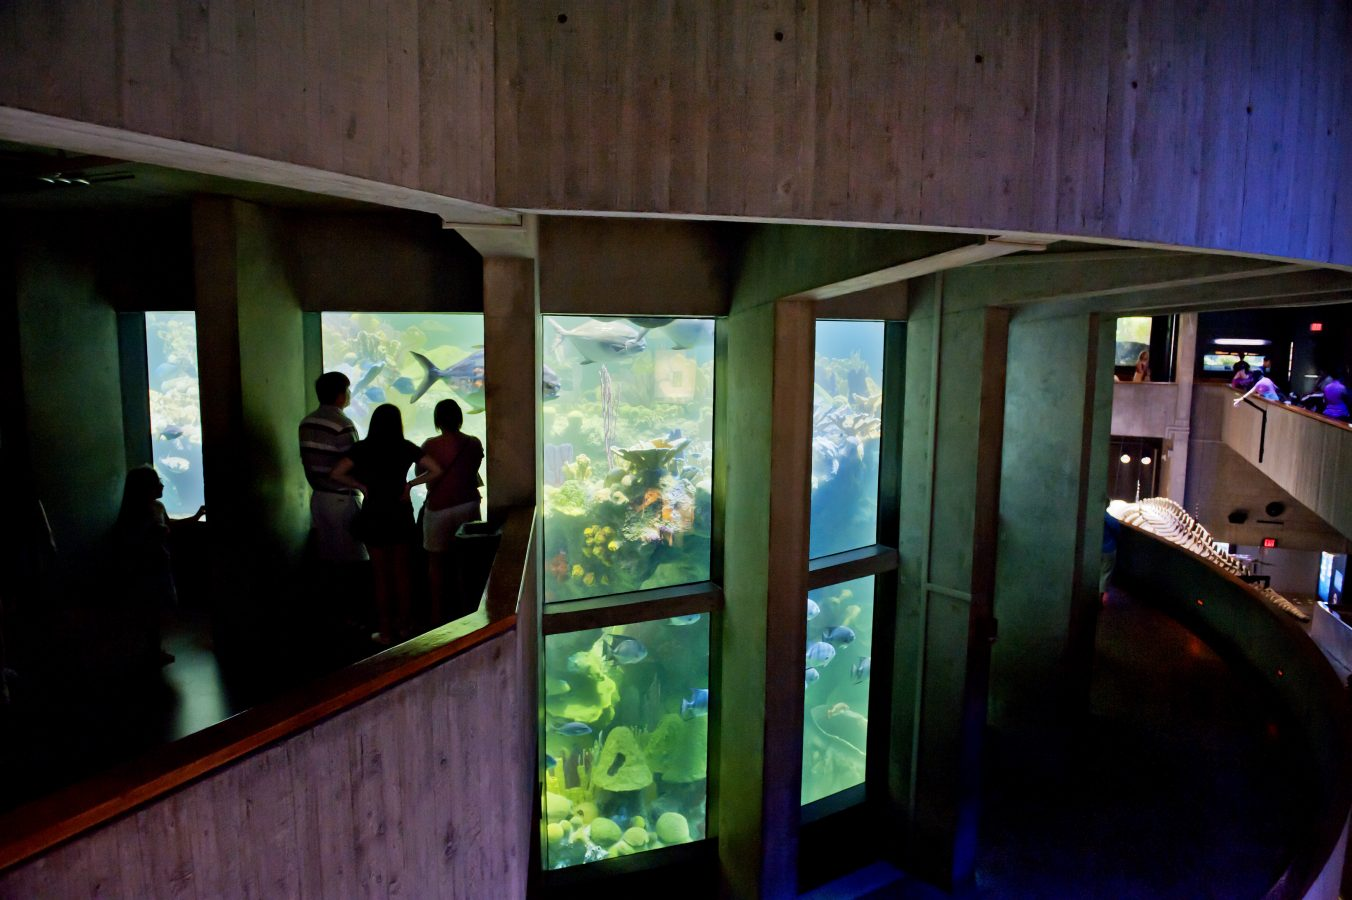 Visitors view giant ocean tank